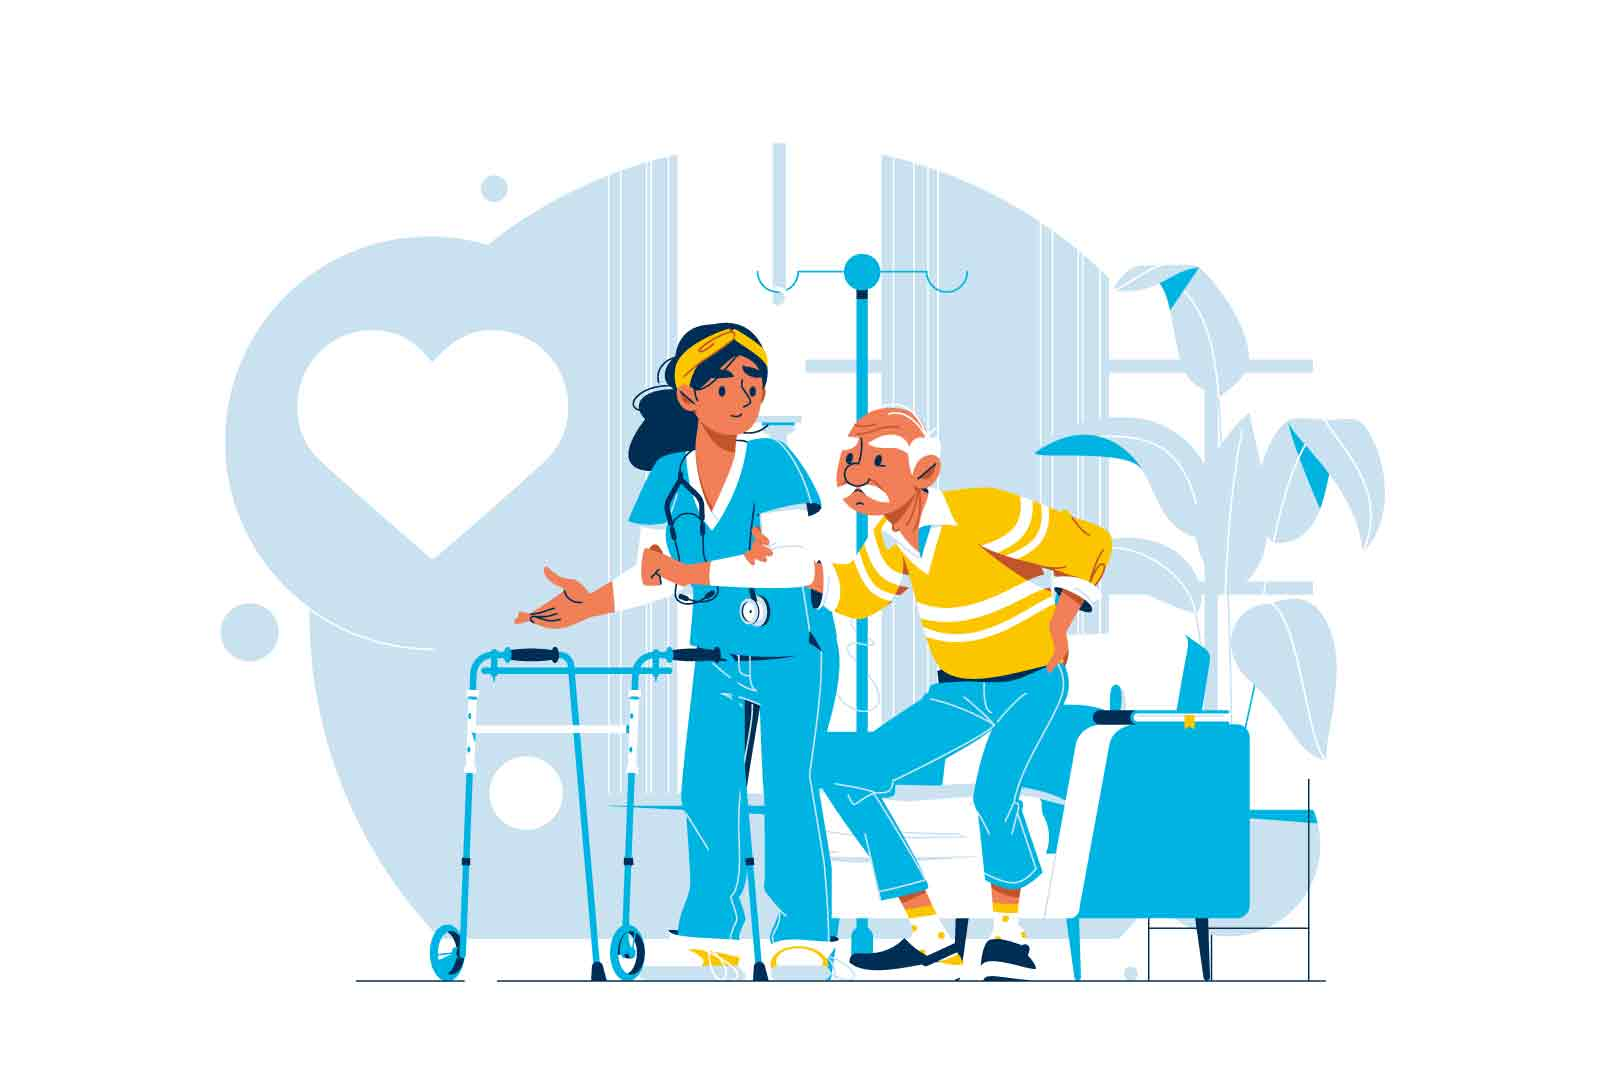 Medical care for elderly male character vector illustration. Aged seniors nurse care flat style. Healthcare, medicine, oldness concept